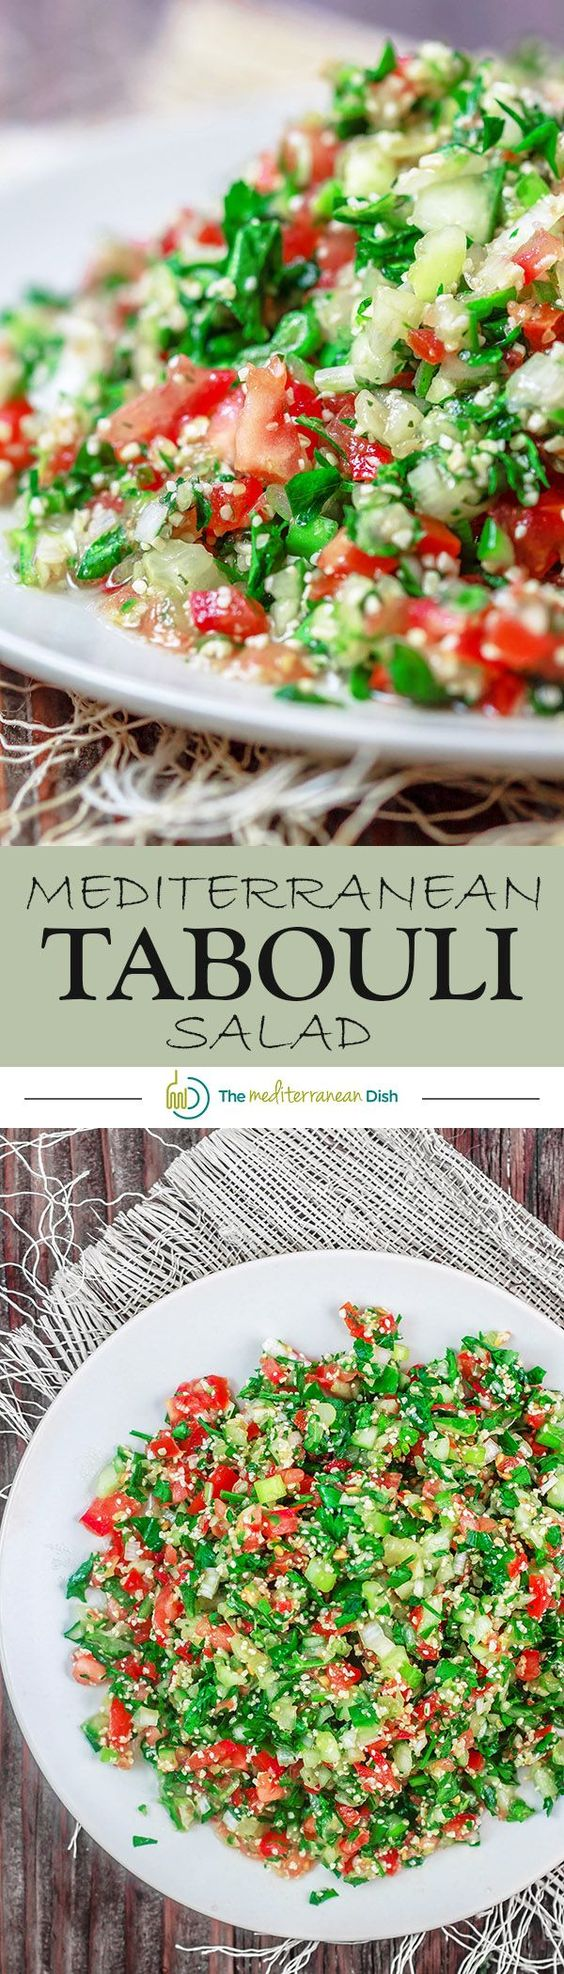 Tabouli Recipe (Tabbouleh)   The Mediterranean Dish. Authentic Middle Eastern tabouli salad with fresh parsley, mint, bulgur, finely chopped vegetables and a simple citrus dressing. See the step-by-step tutorial at The Mediterranean Dish food blog.